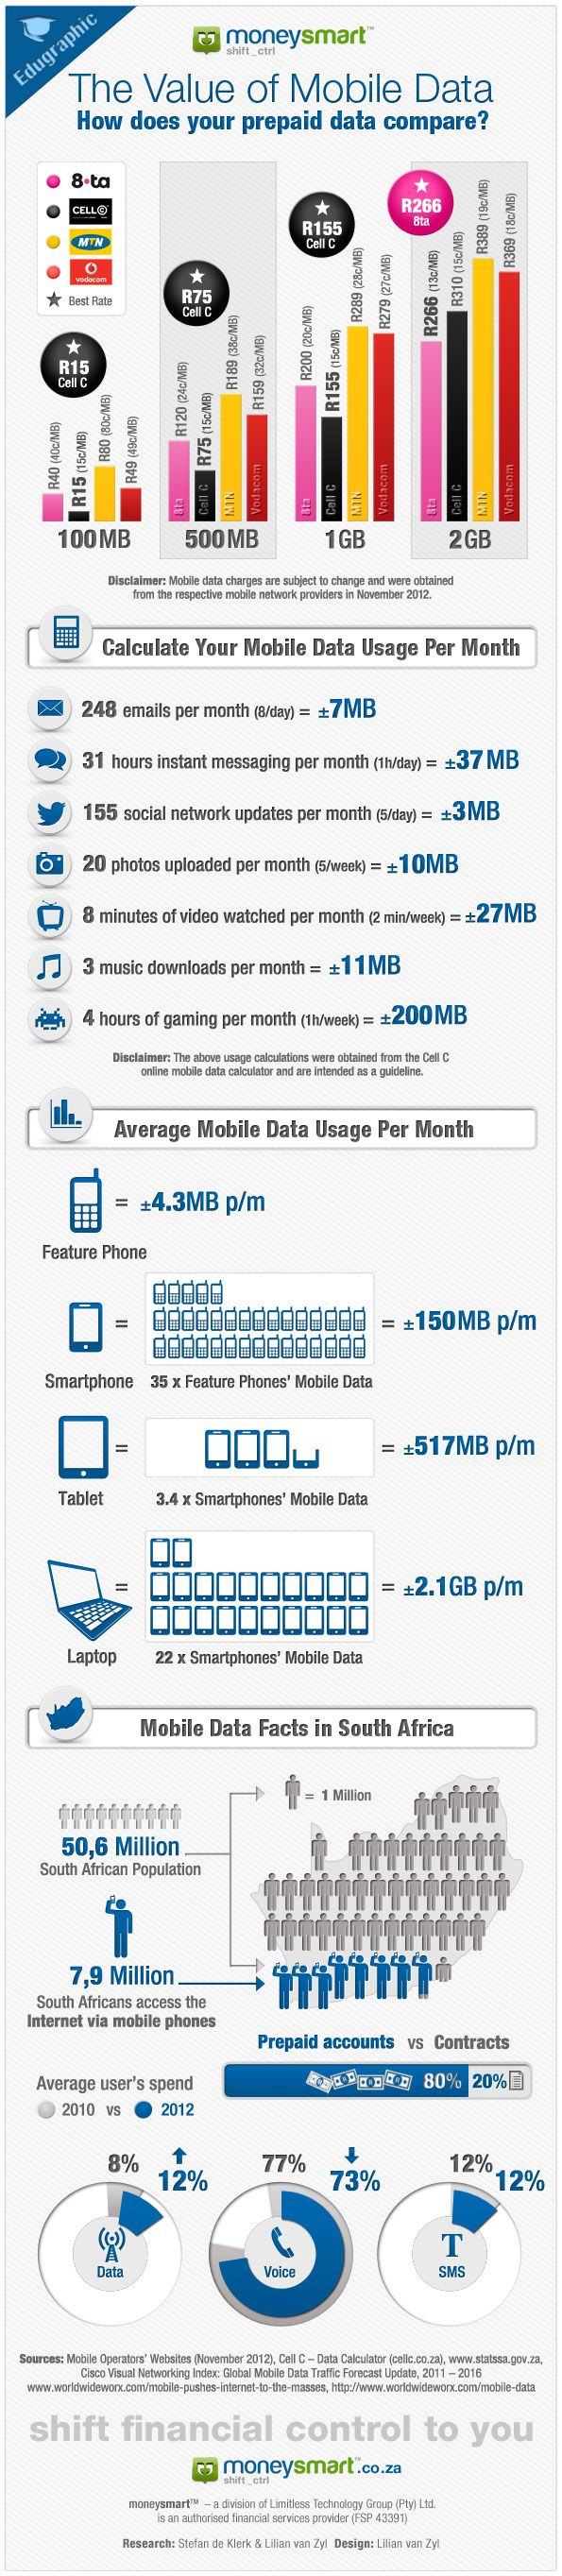 Data is the new currency! Are you getting the best value for money on your prepaid mobile data? Check out our infographic to compare. Re-pin and spread the knowledge.